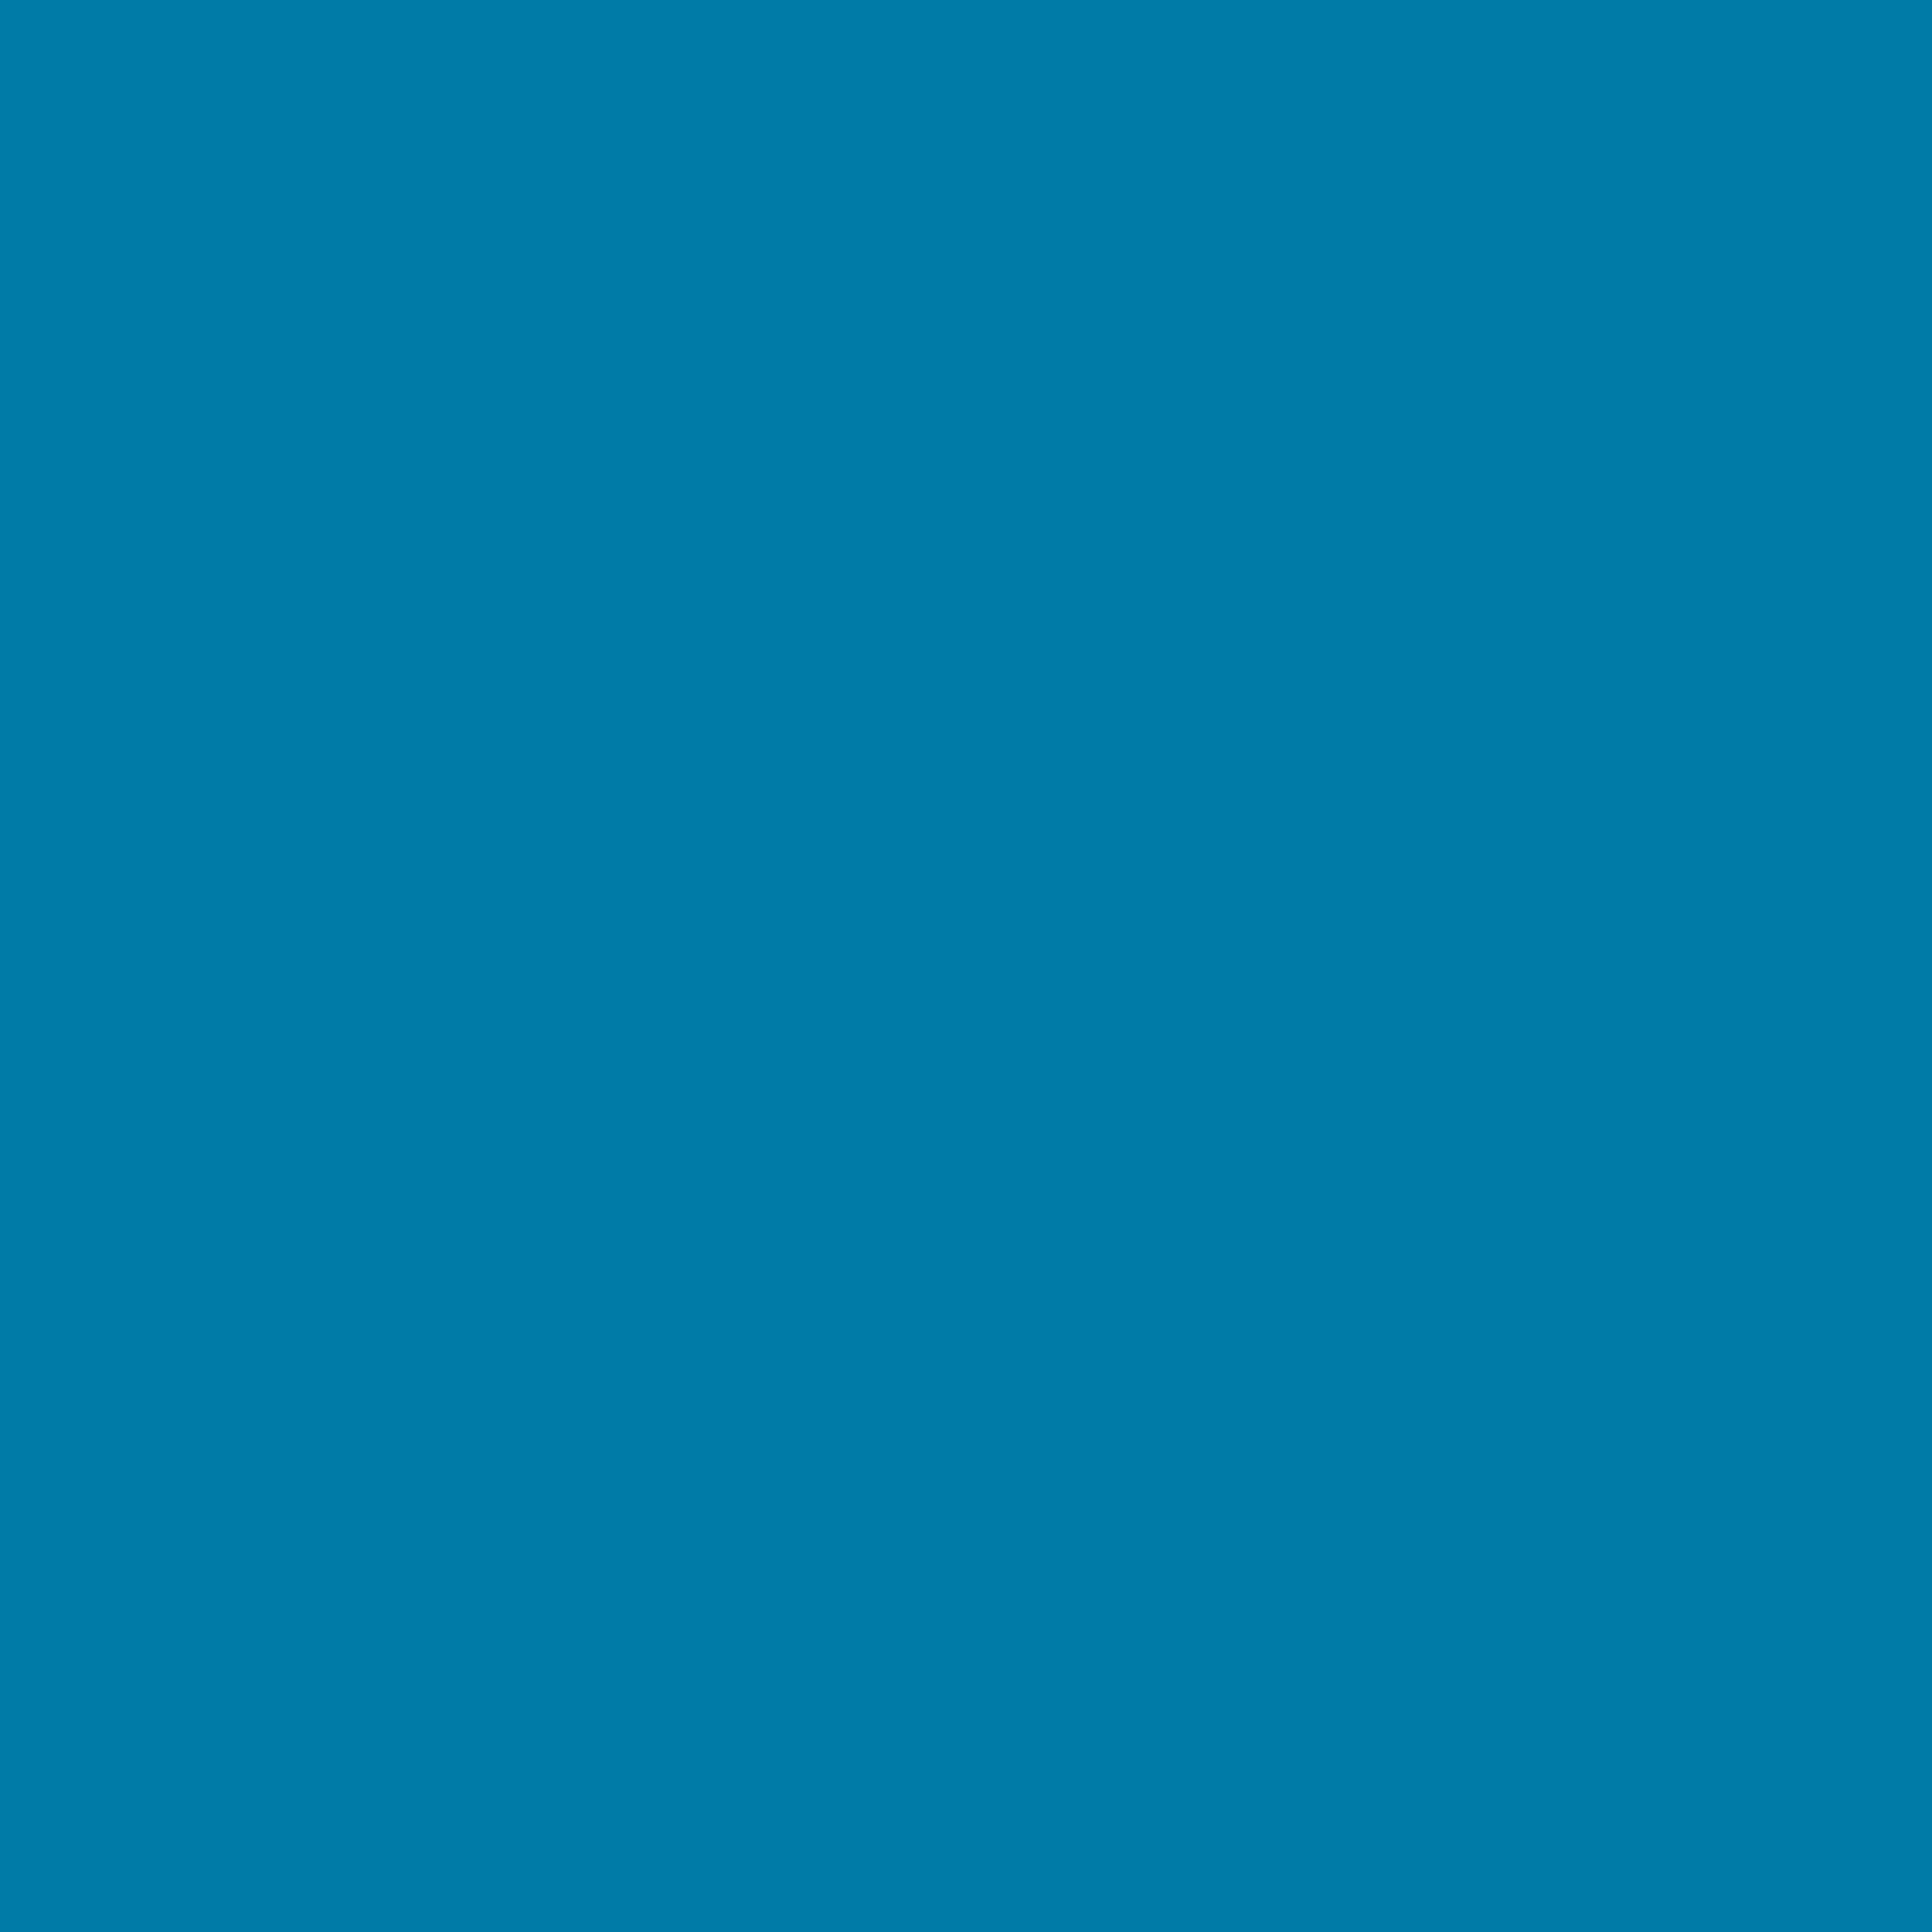 3600x3600 Cerulean Solid Color Background